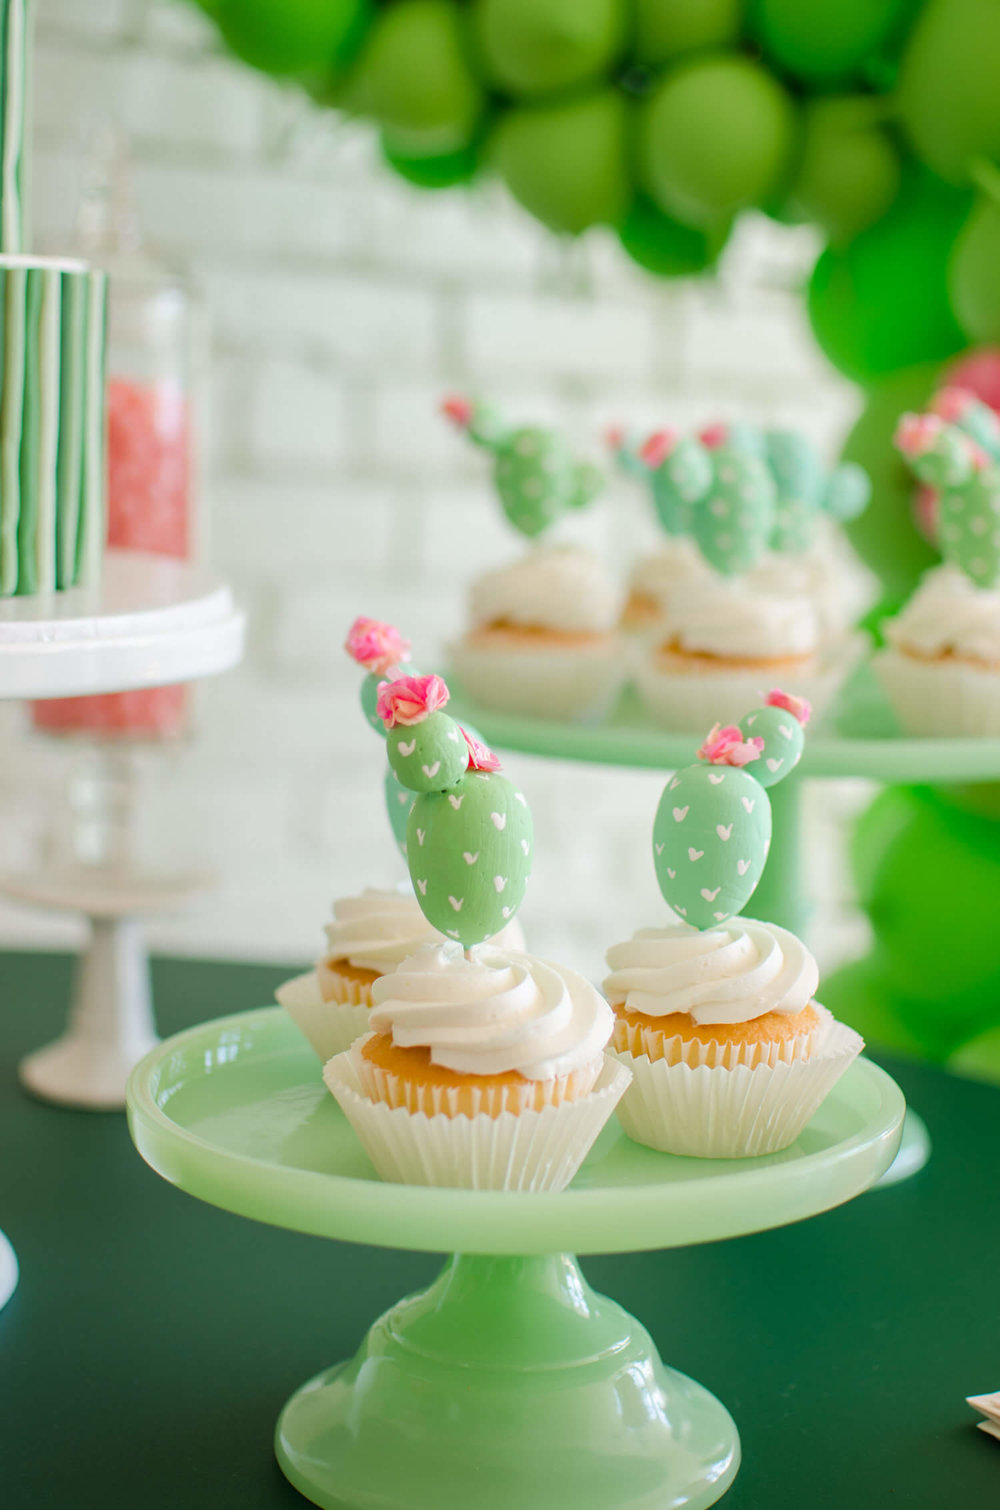 Cinco de Mayo party ideas / Cinco de Mayo desserts / Cinco de Mayo Cupcake idea / Cactus cupcake idea / Cactus Cupcake topper idea / Cinco de Mayo dessert table / Cactus DIY / Southwestern party ideas / Mint and Pink party ideas /Styled by Carolina from MINT Event Design / www.minteventdesign.com